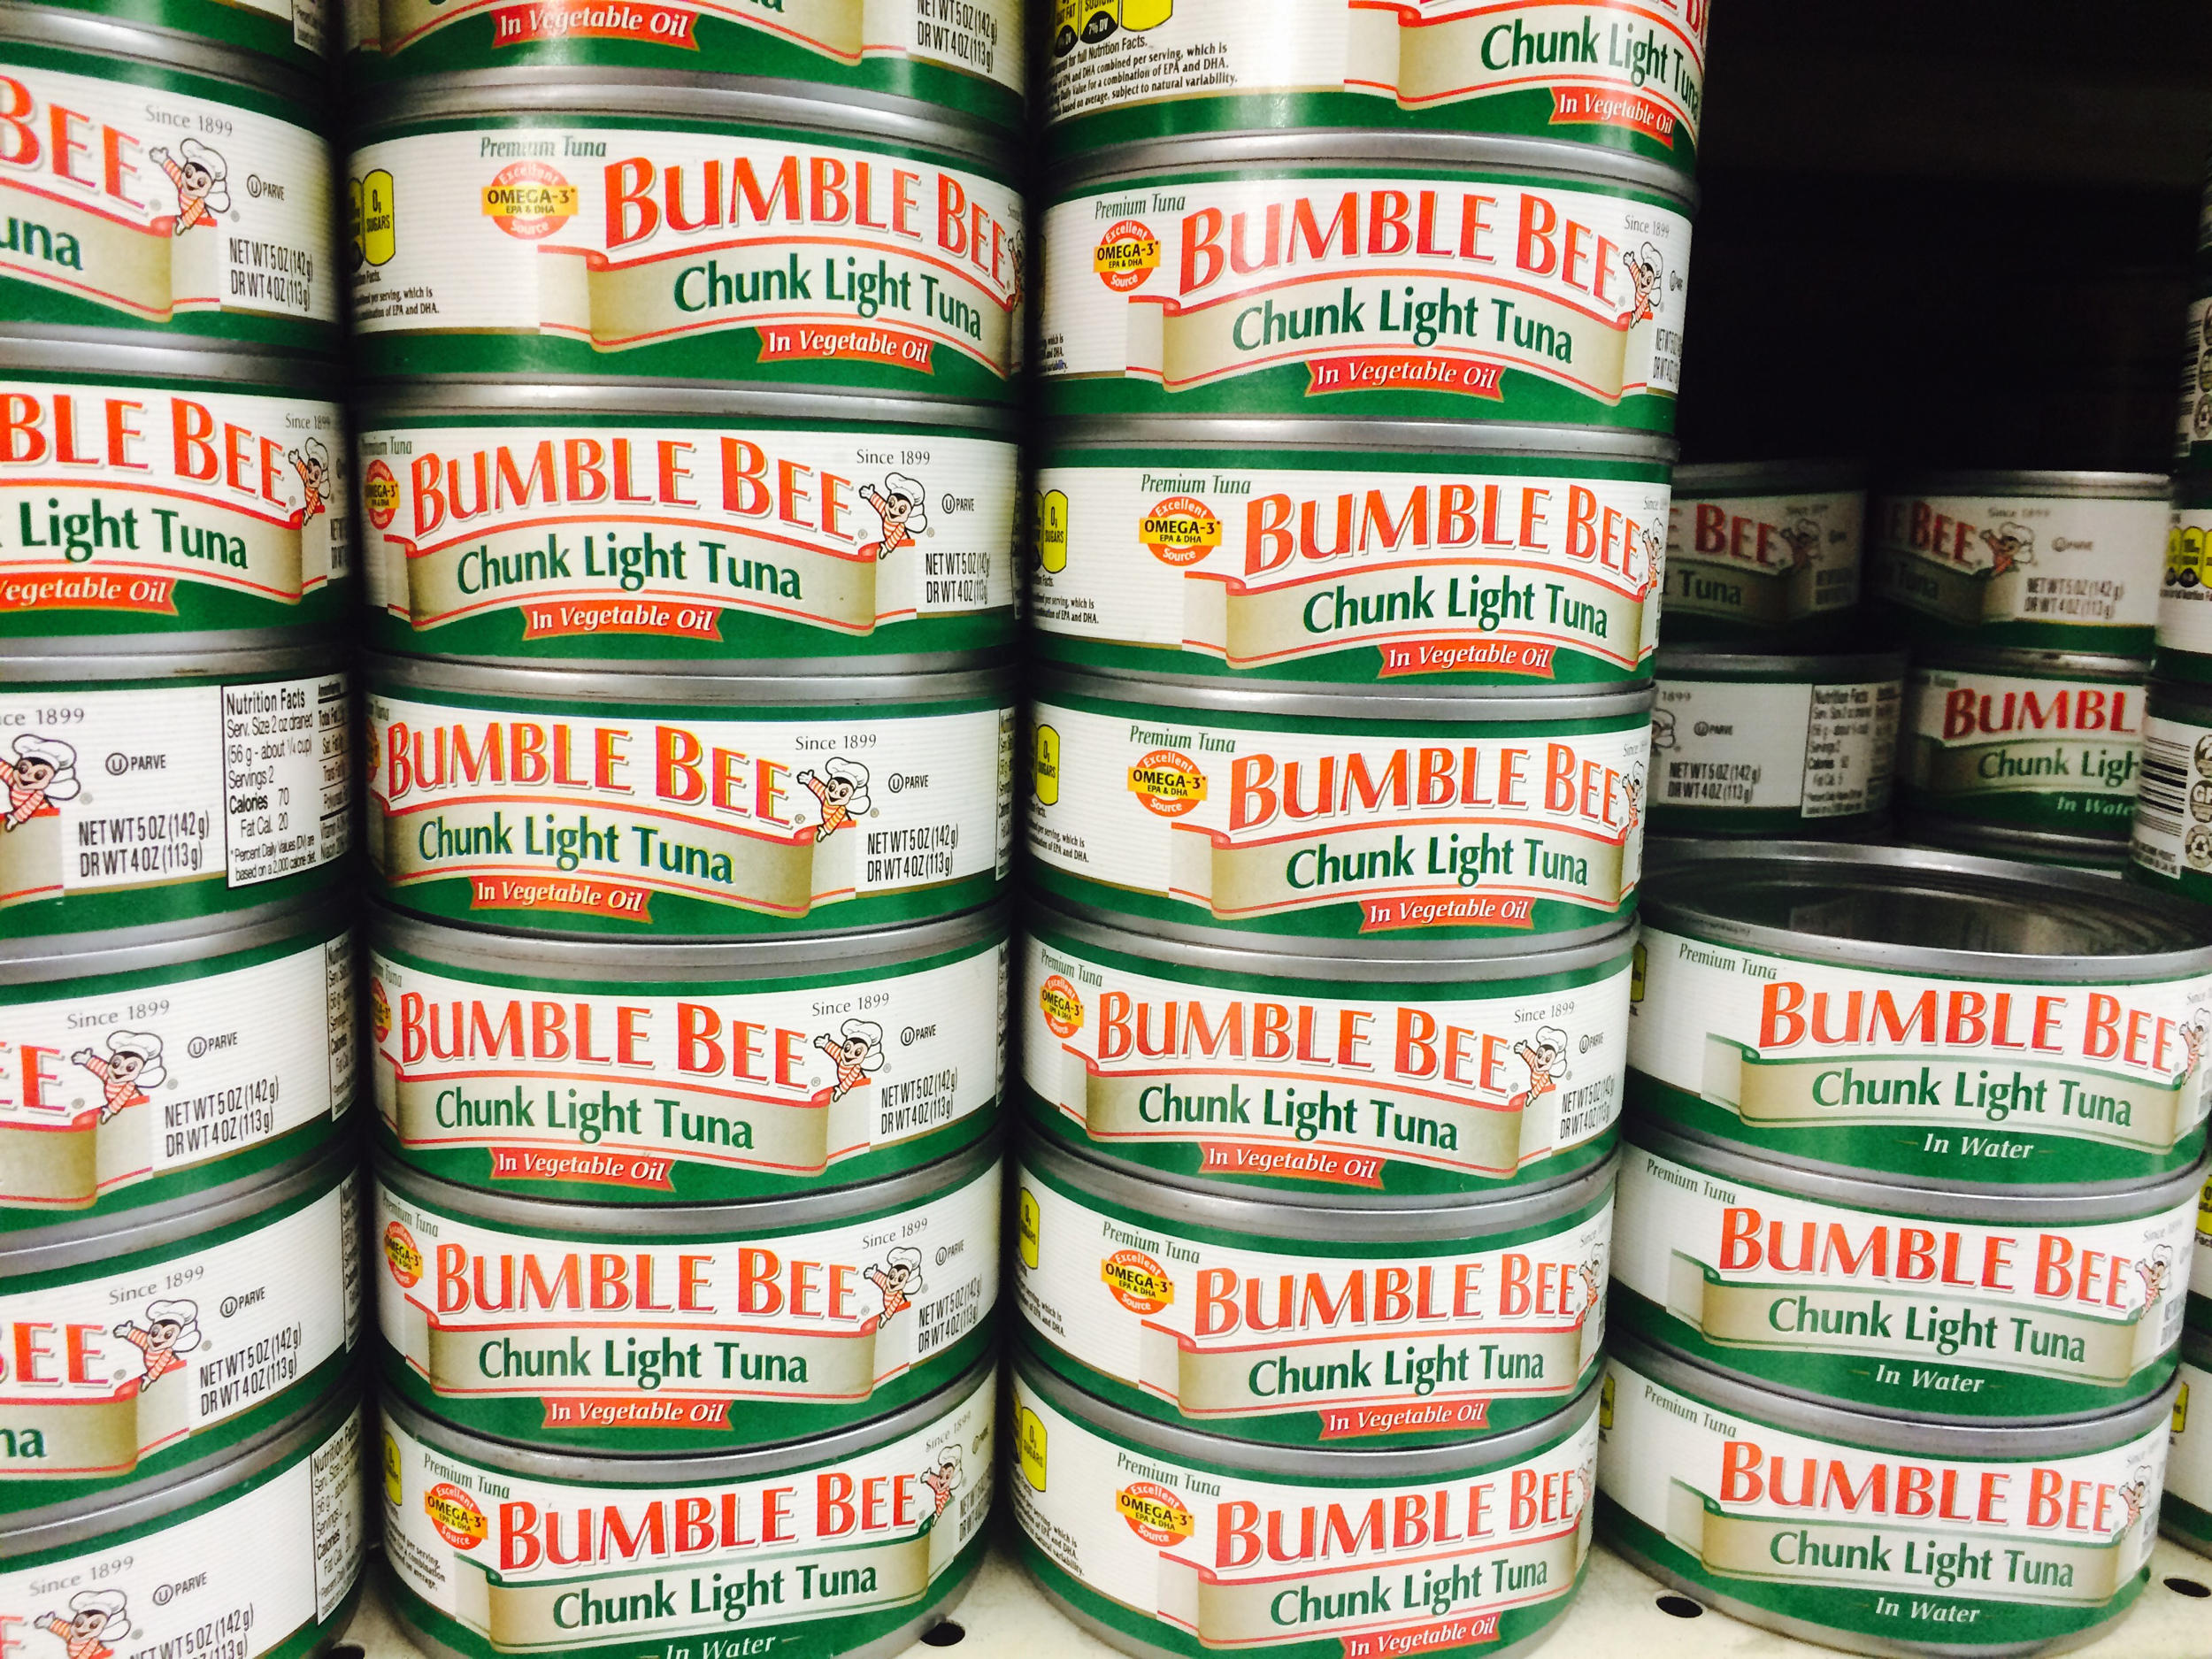 Bumble Bee files for bankruptcy after $25M fine for tuna price fixing